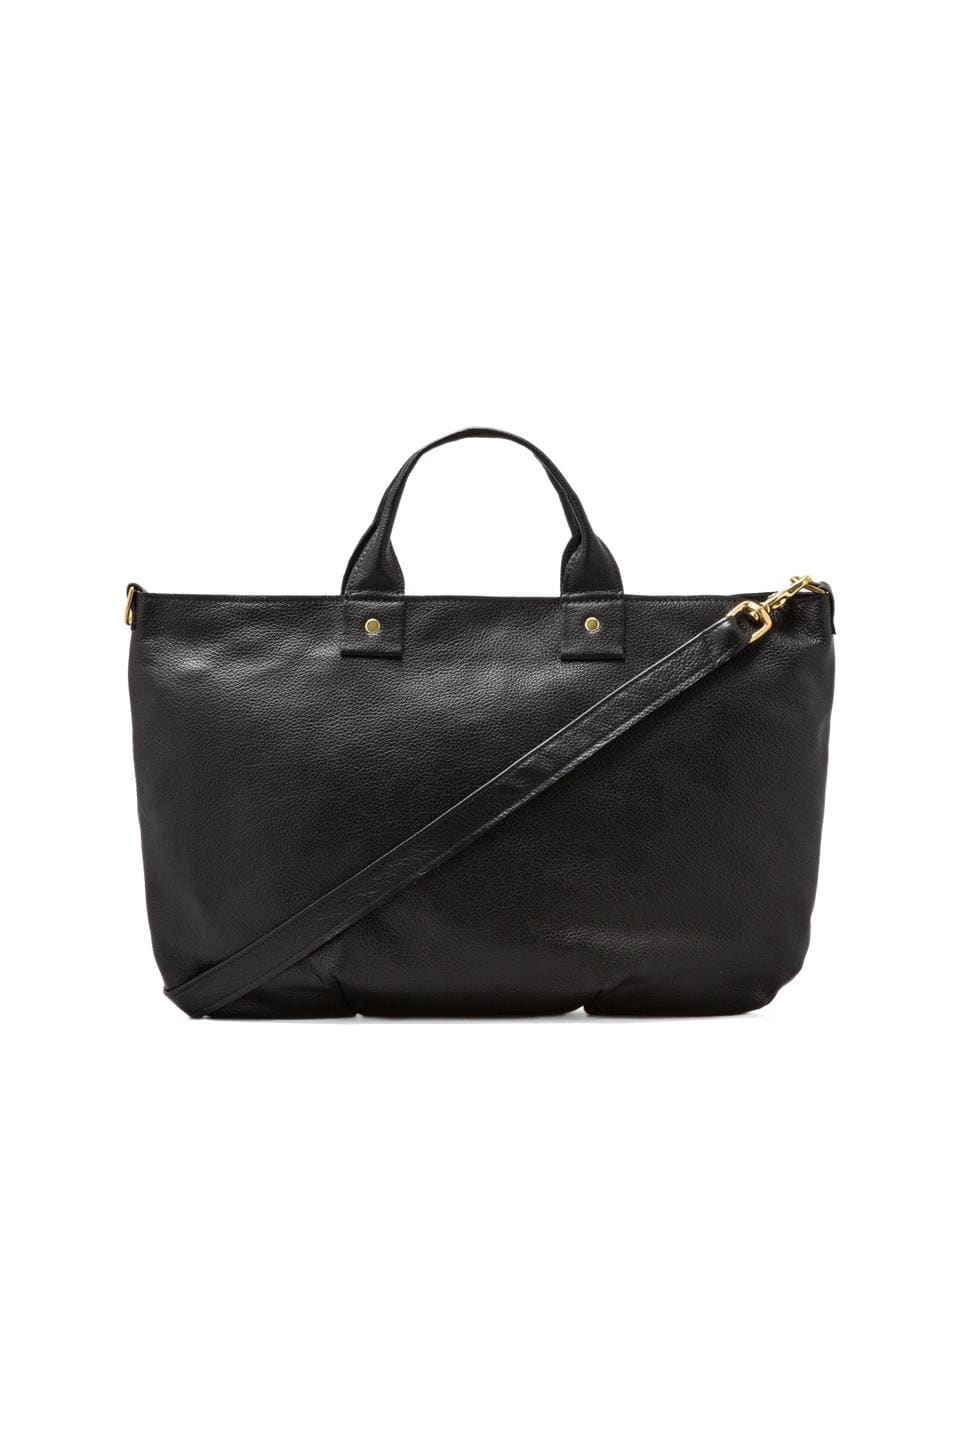 Clare V. Messenger in Black Peilli